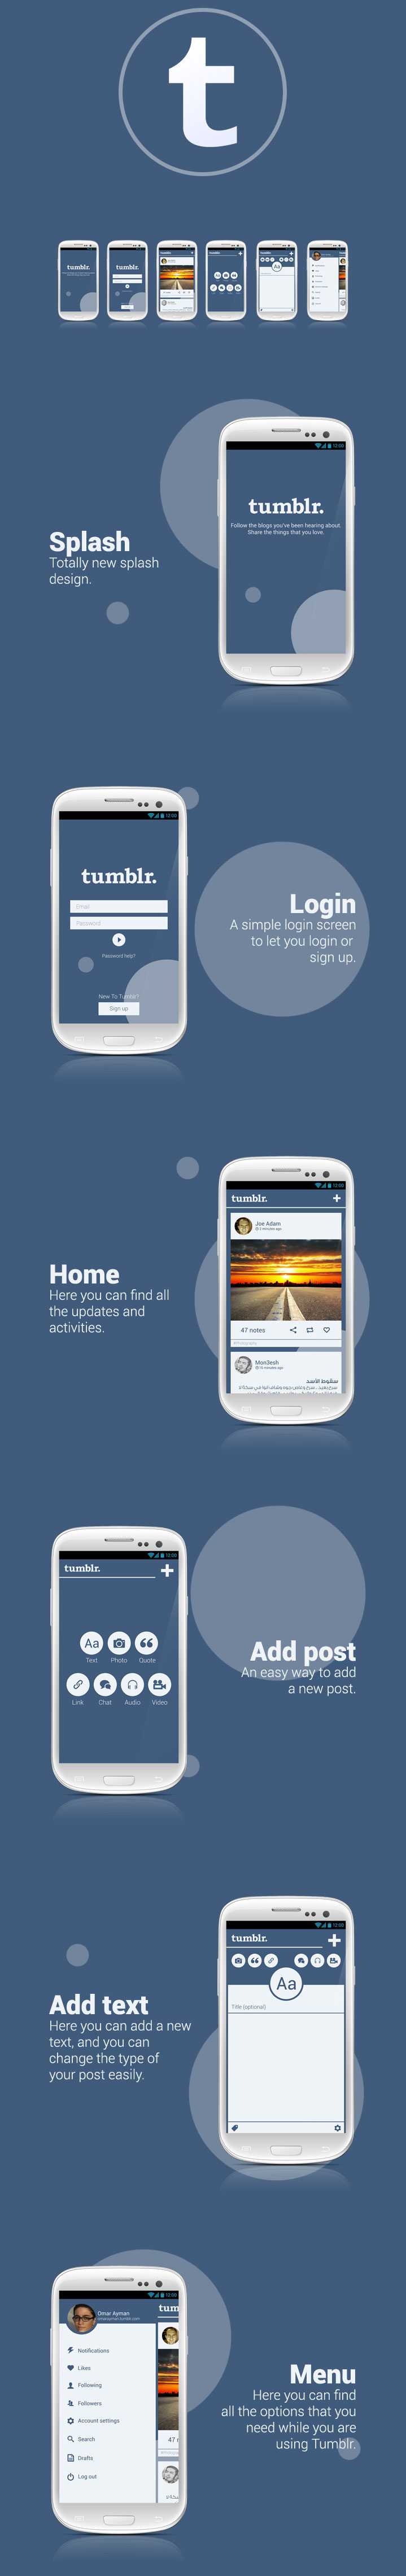 Daily Mobile UI Design Inspiration #128 | GUI (Great UI) Collection ...